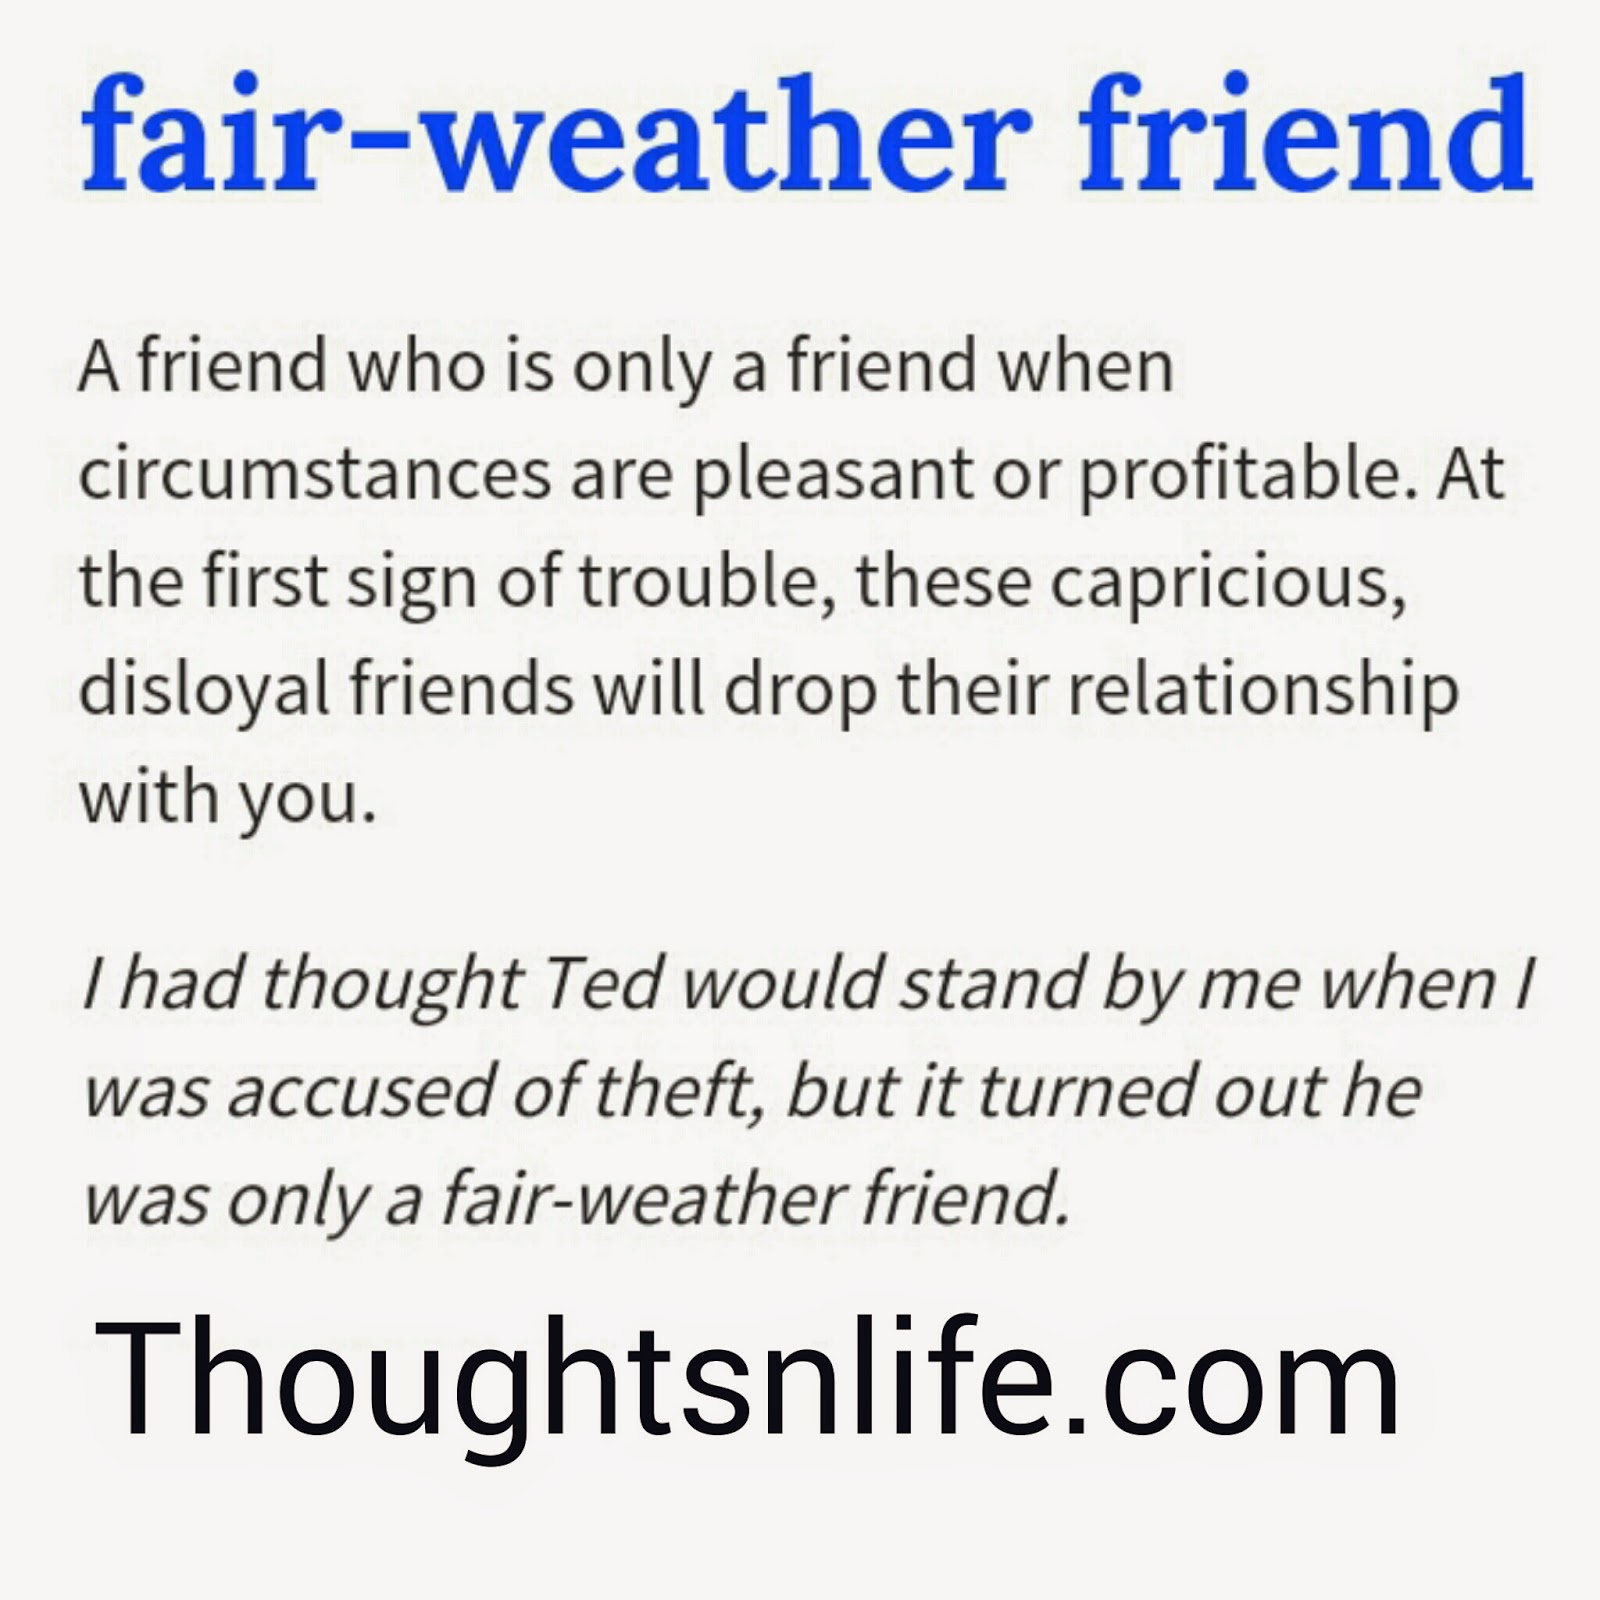 How to Handle a Fair Weather Friendship